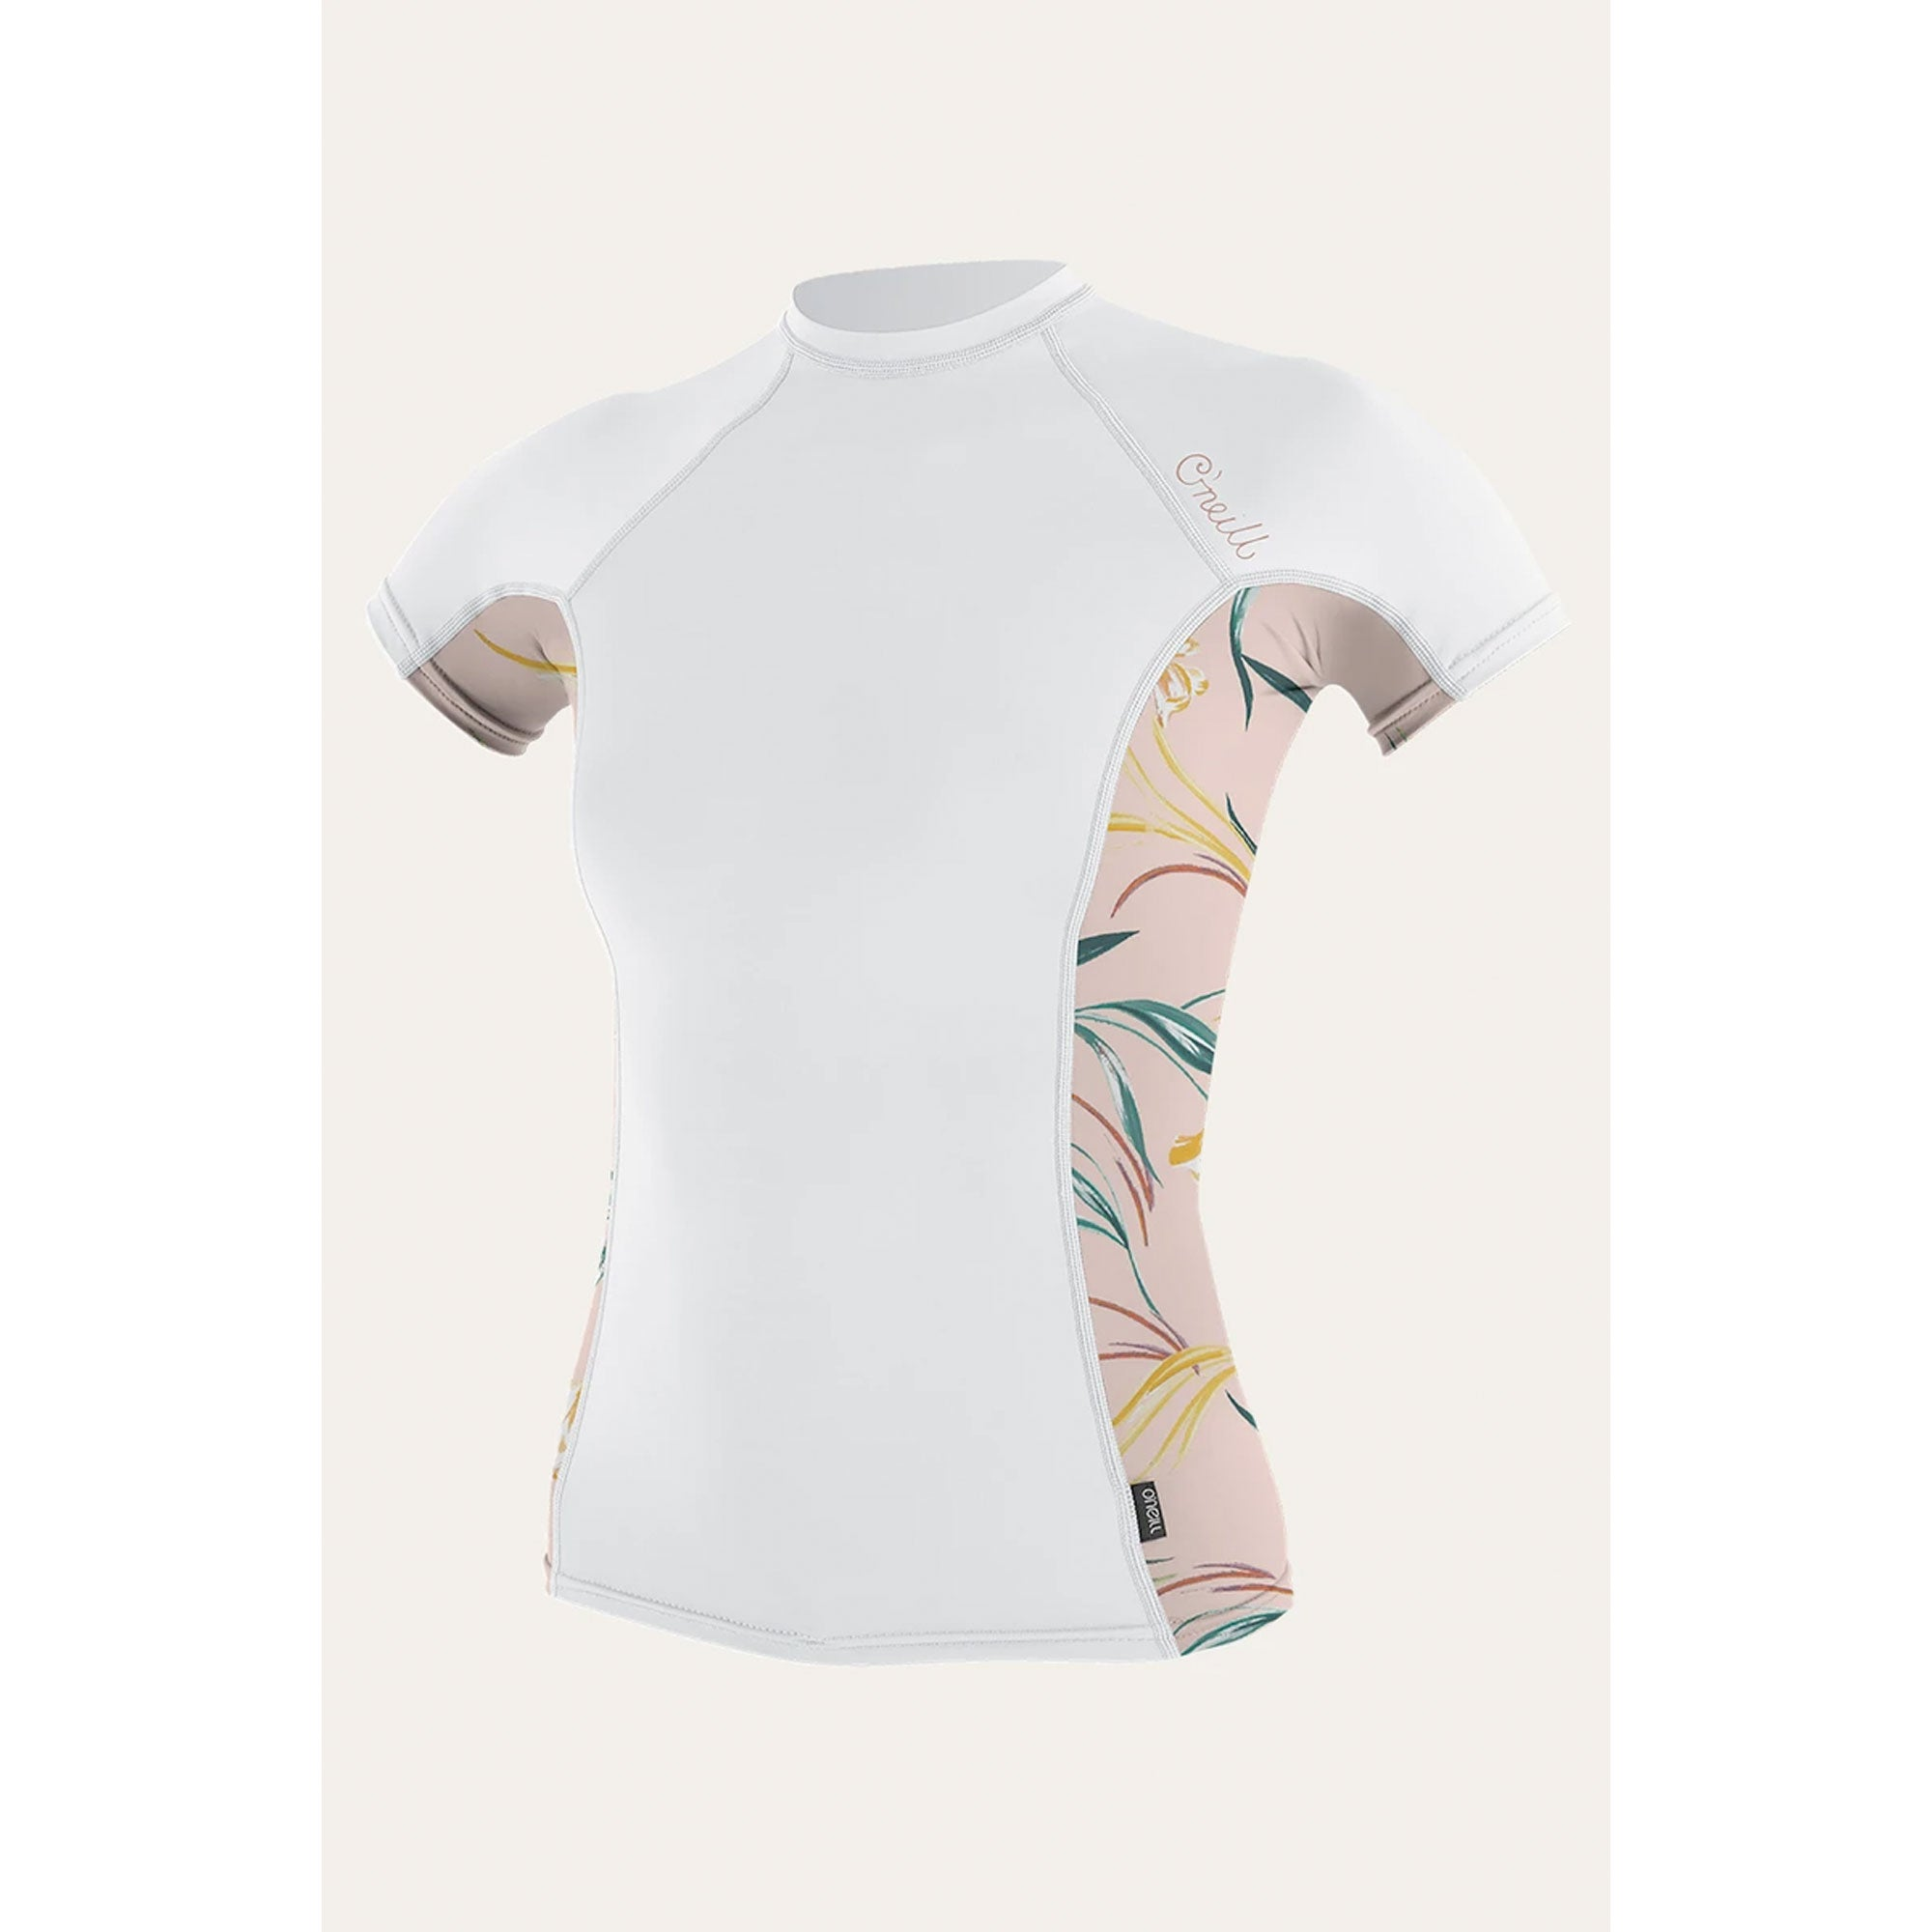 O'Neill Women's Side Print S/S Rash Guard